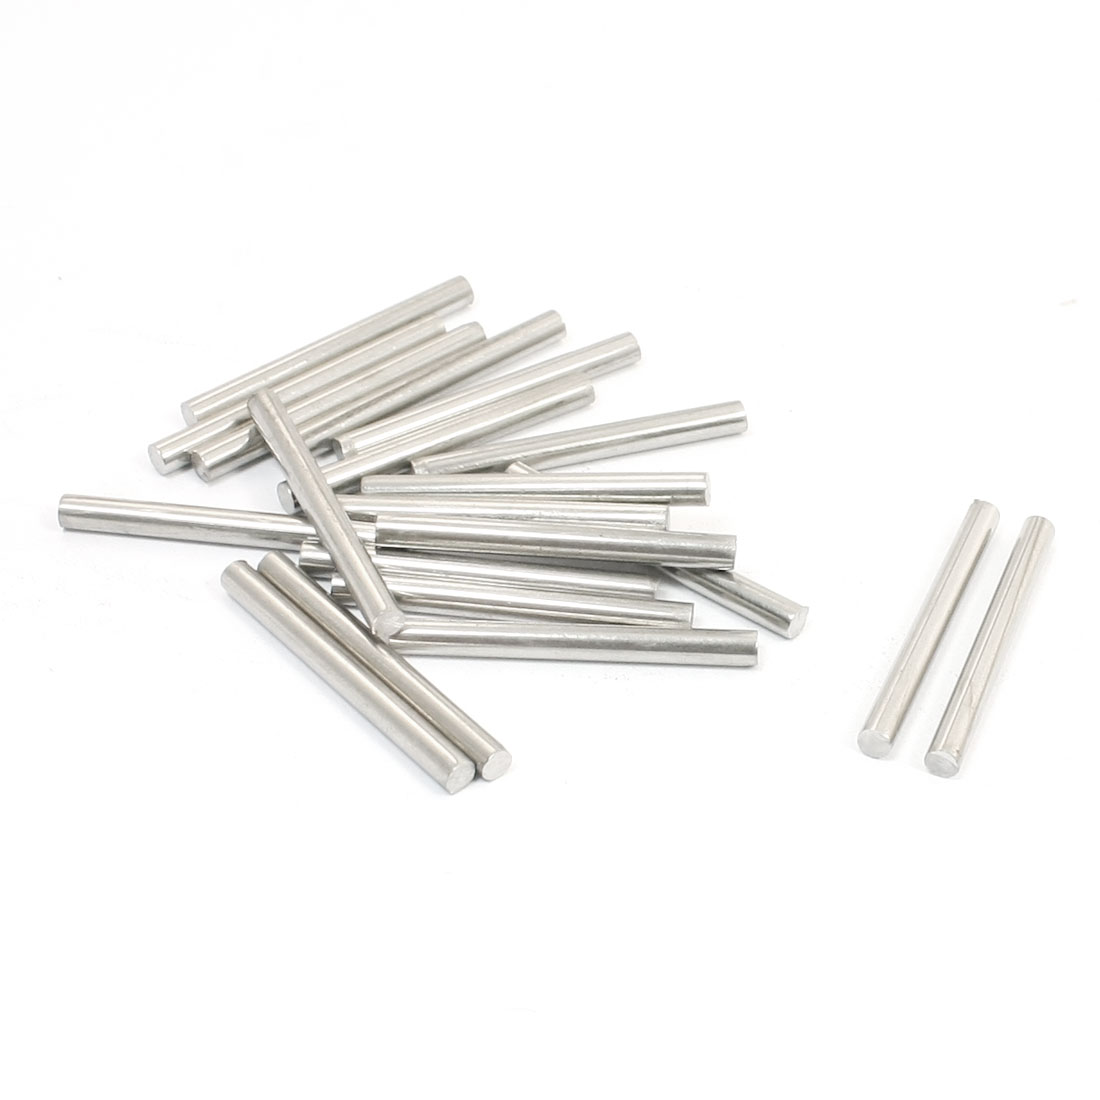 20Pcs Stainless Steel 30mm x 3mm Round Rod Stock for RC Airplane Model